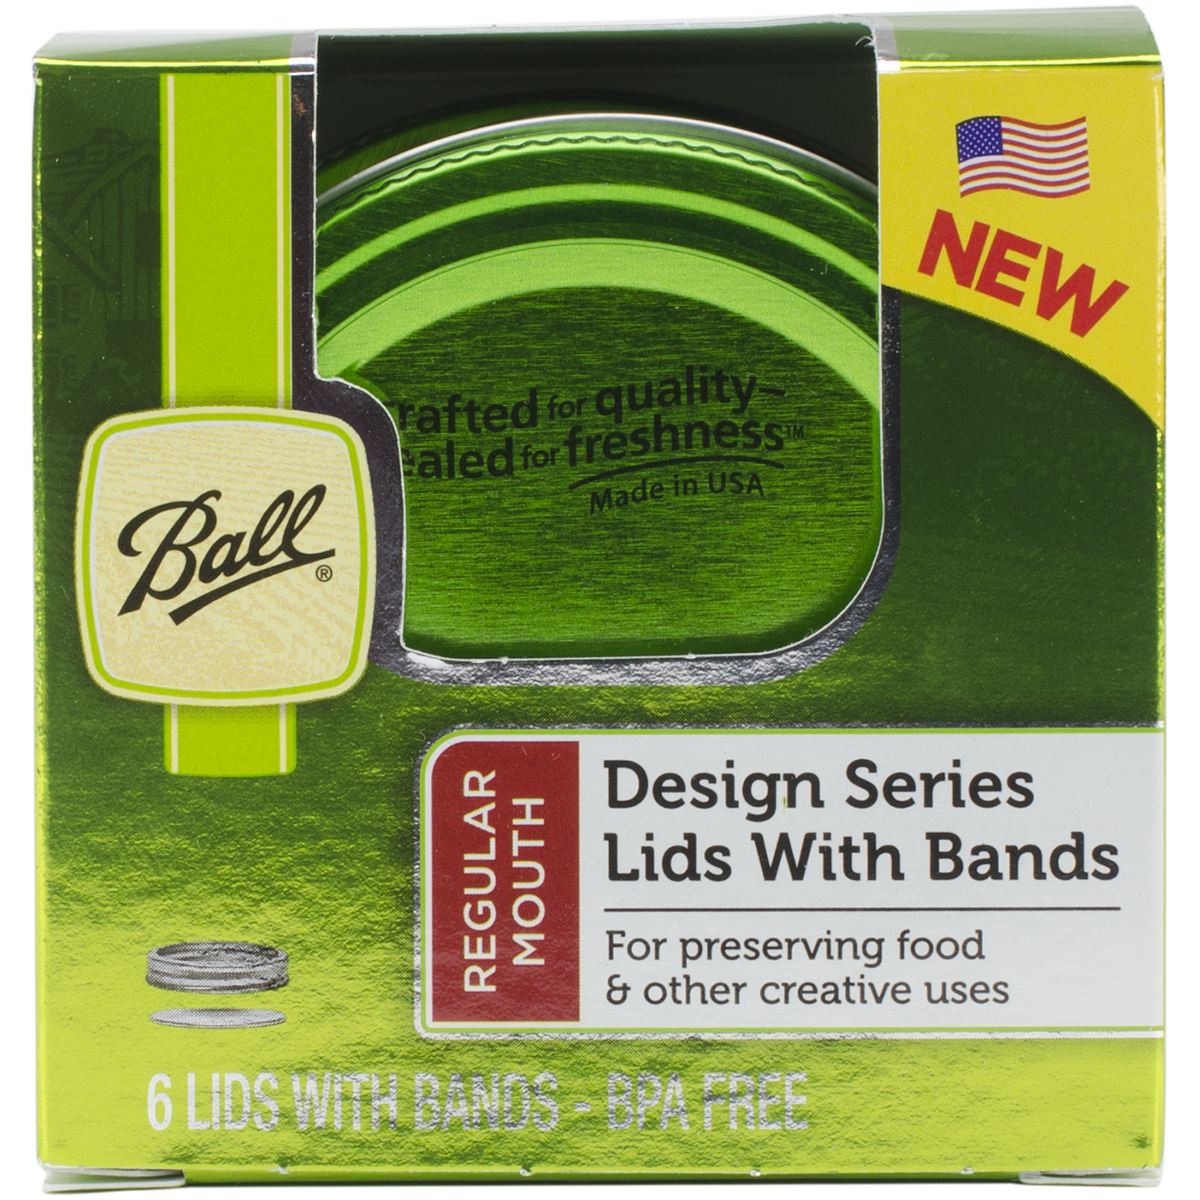 Ball Color 6-Pack Lids and Bands, Green Multi-Colored